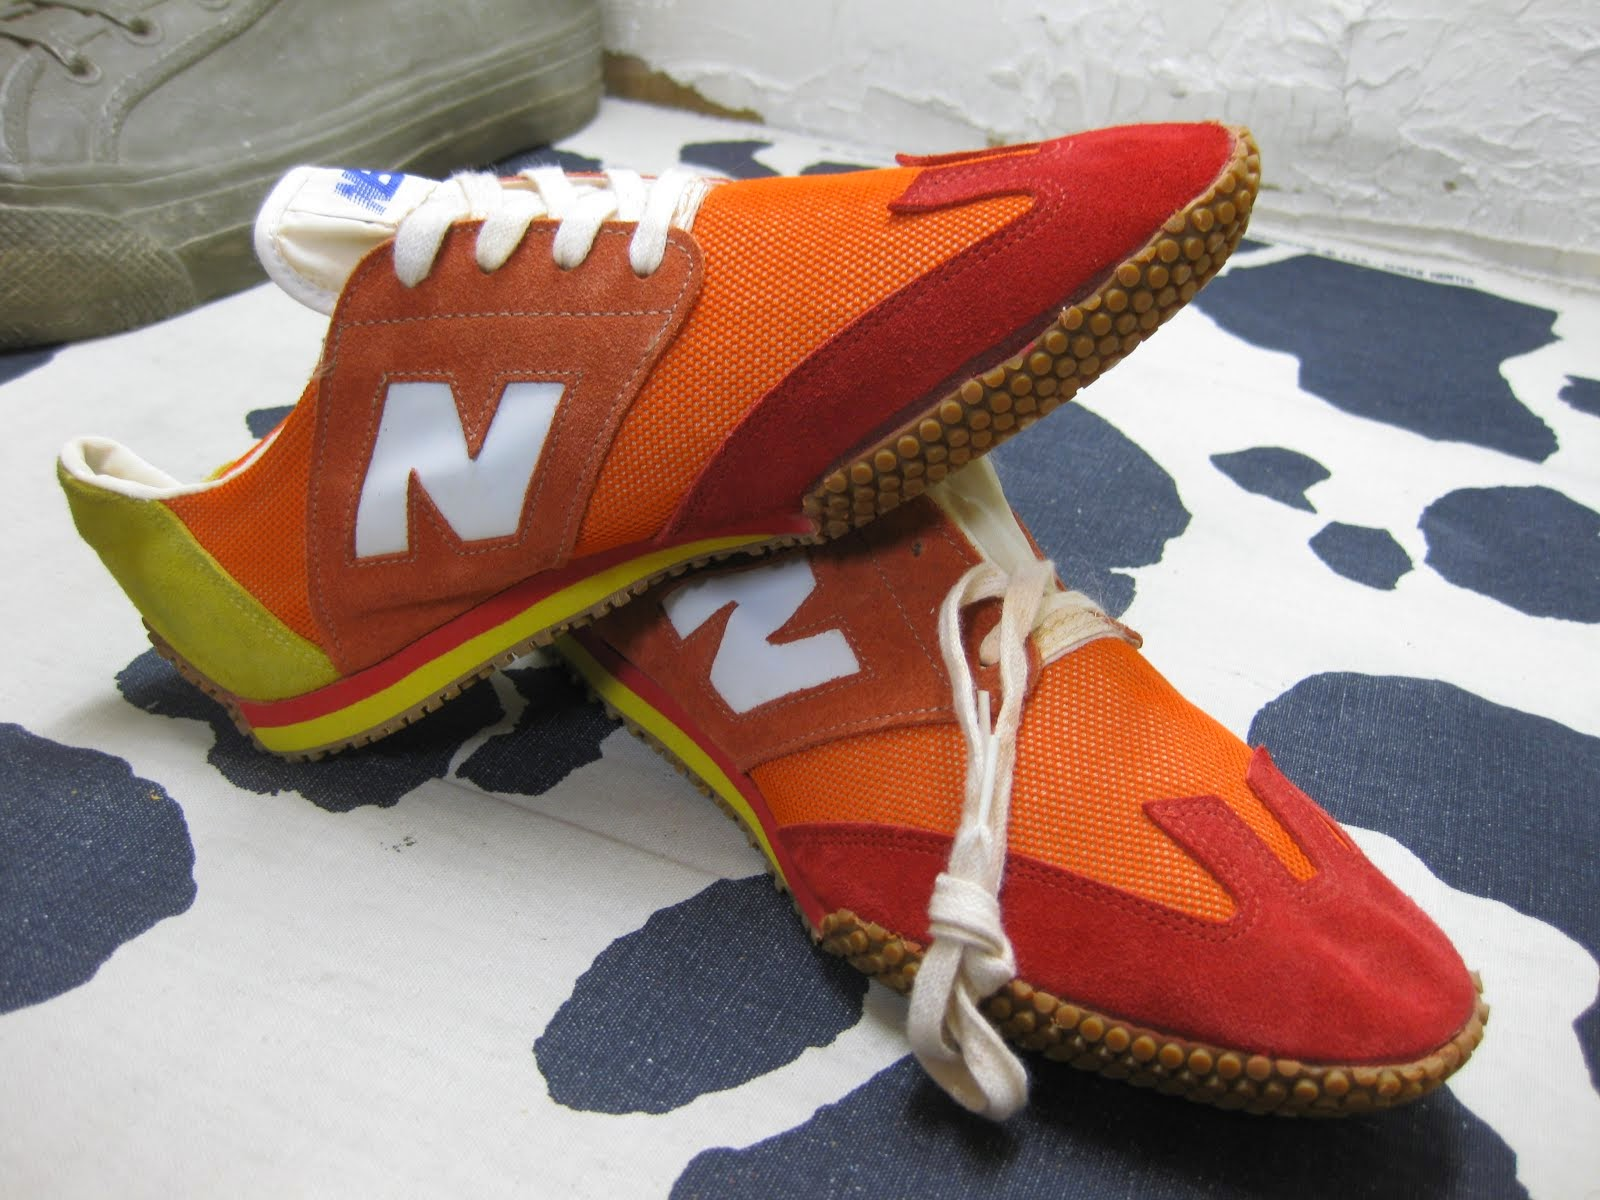 70's DEAD STOCK               NEW BALANCE               SUPER COMP               SIZE:10 1/2 EE